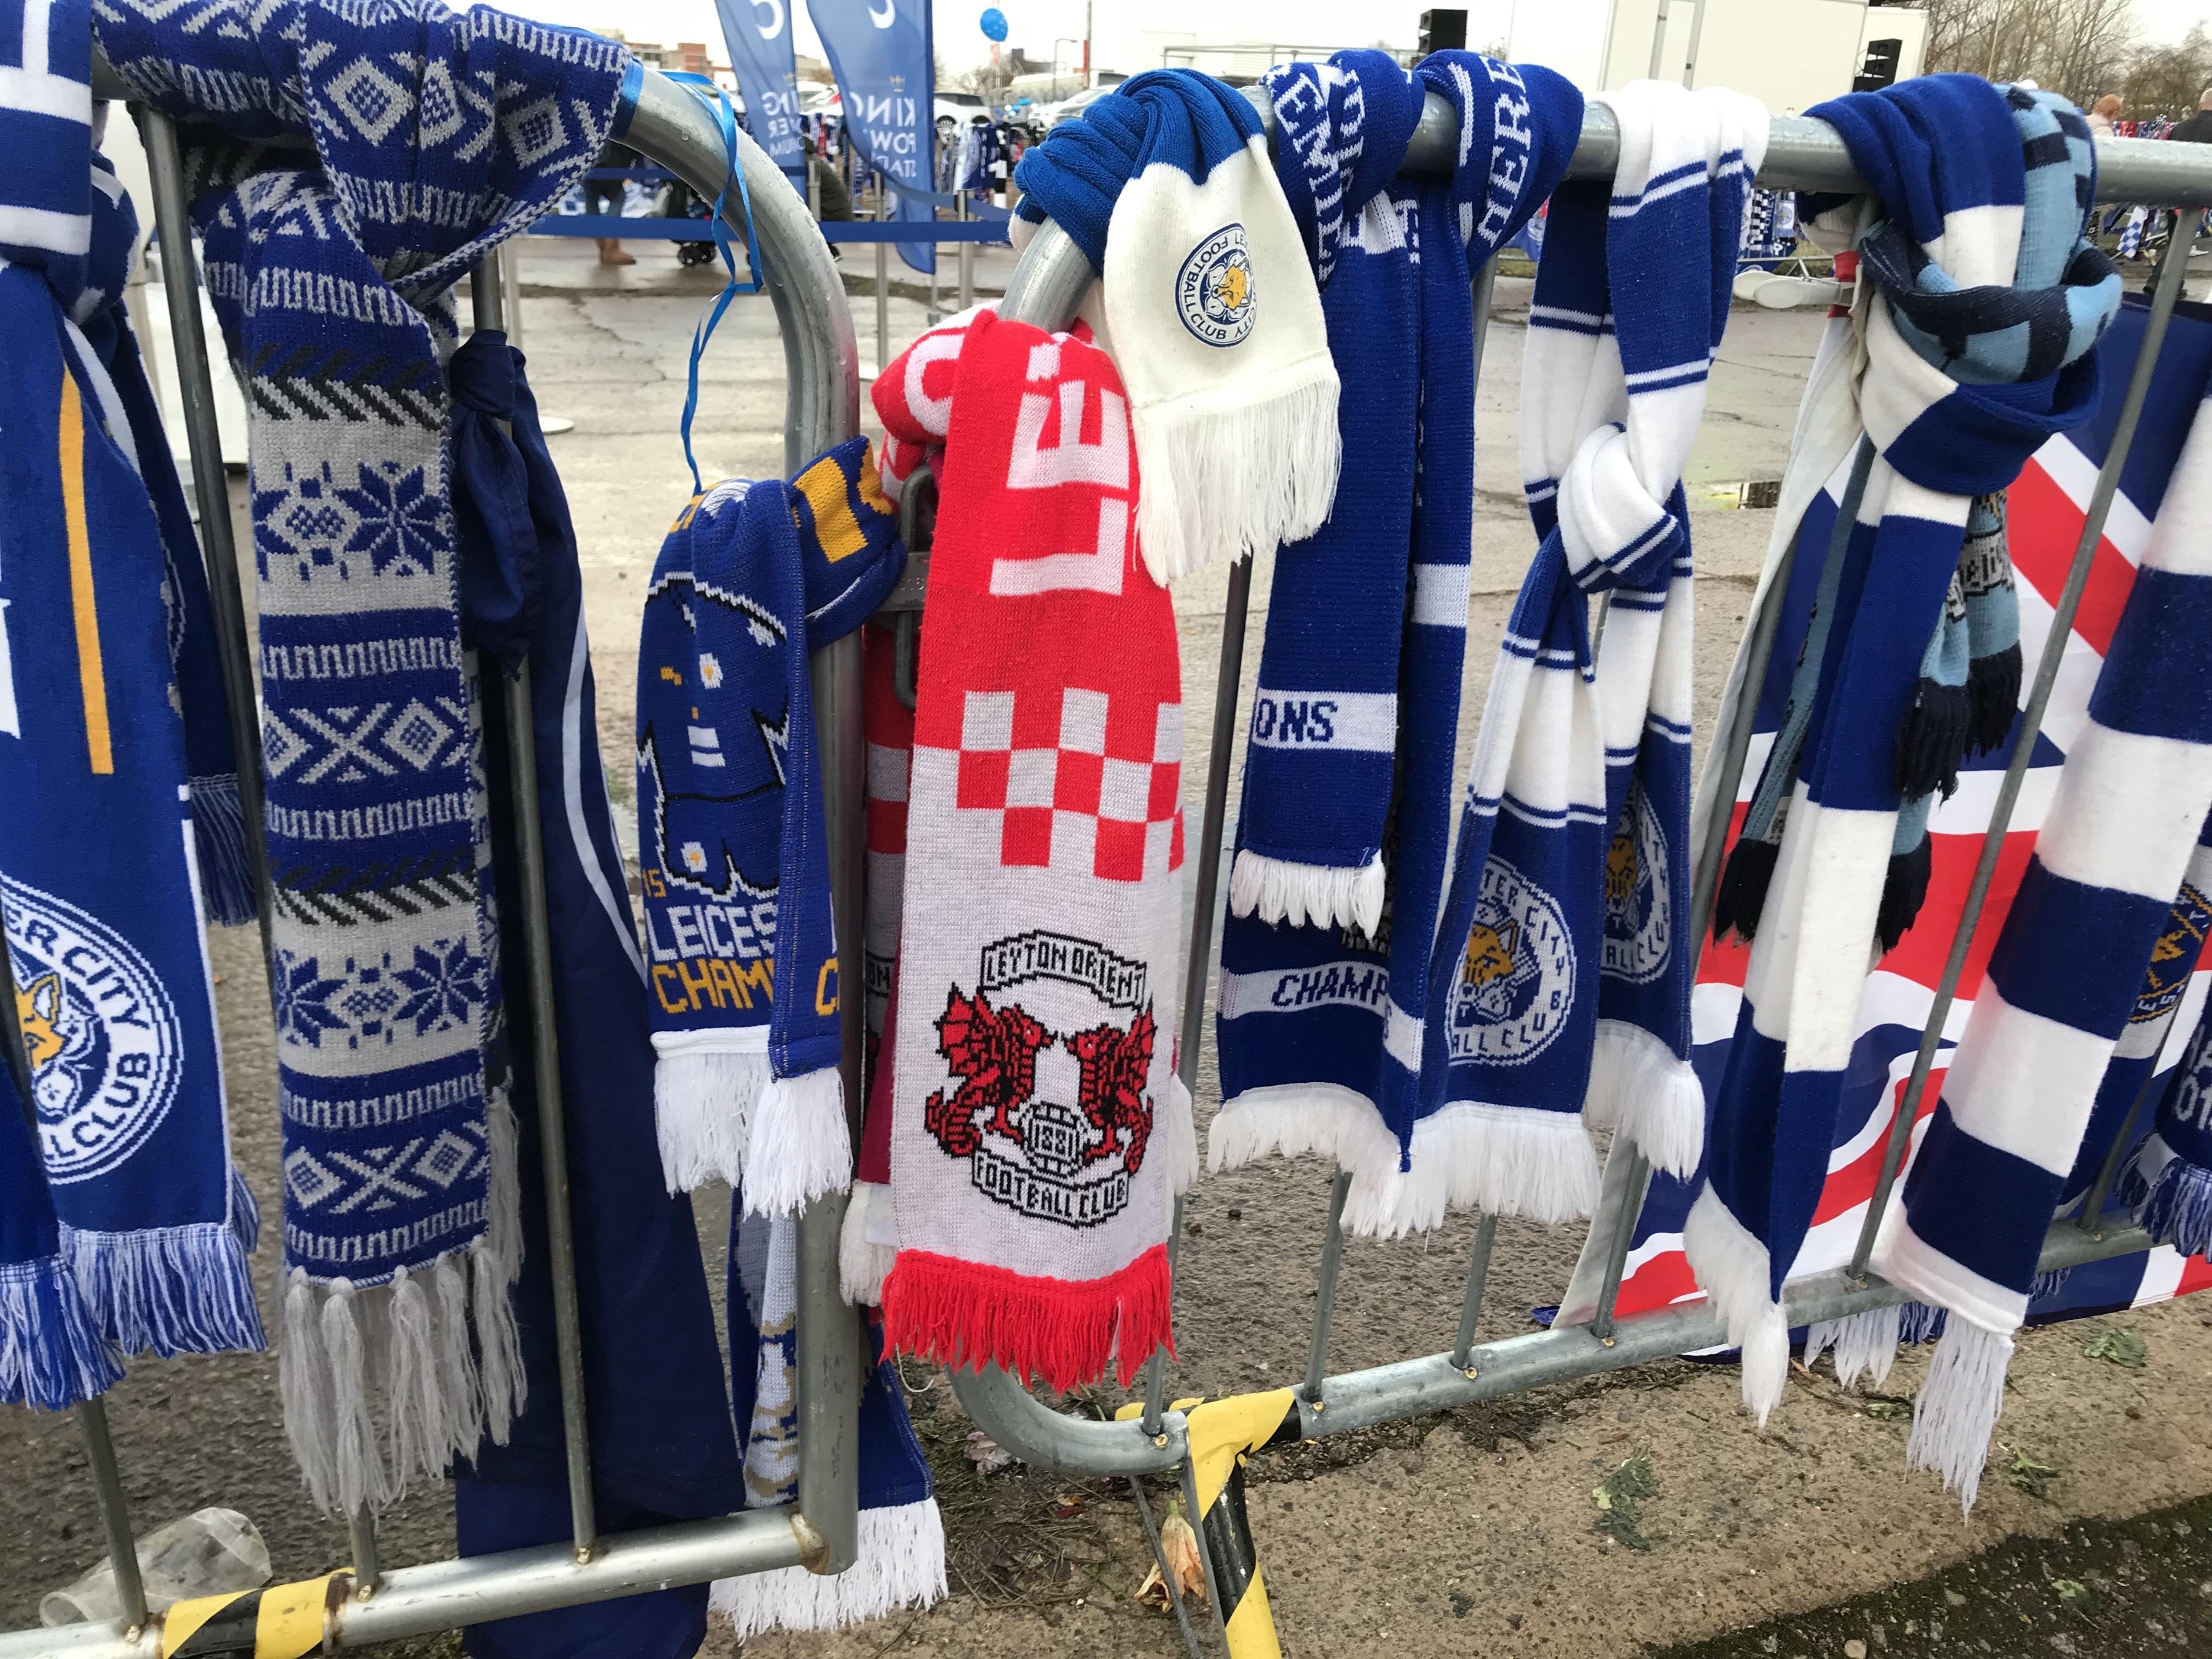 A Leyton Orient scarf could be seen in the sea of blue